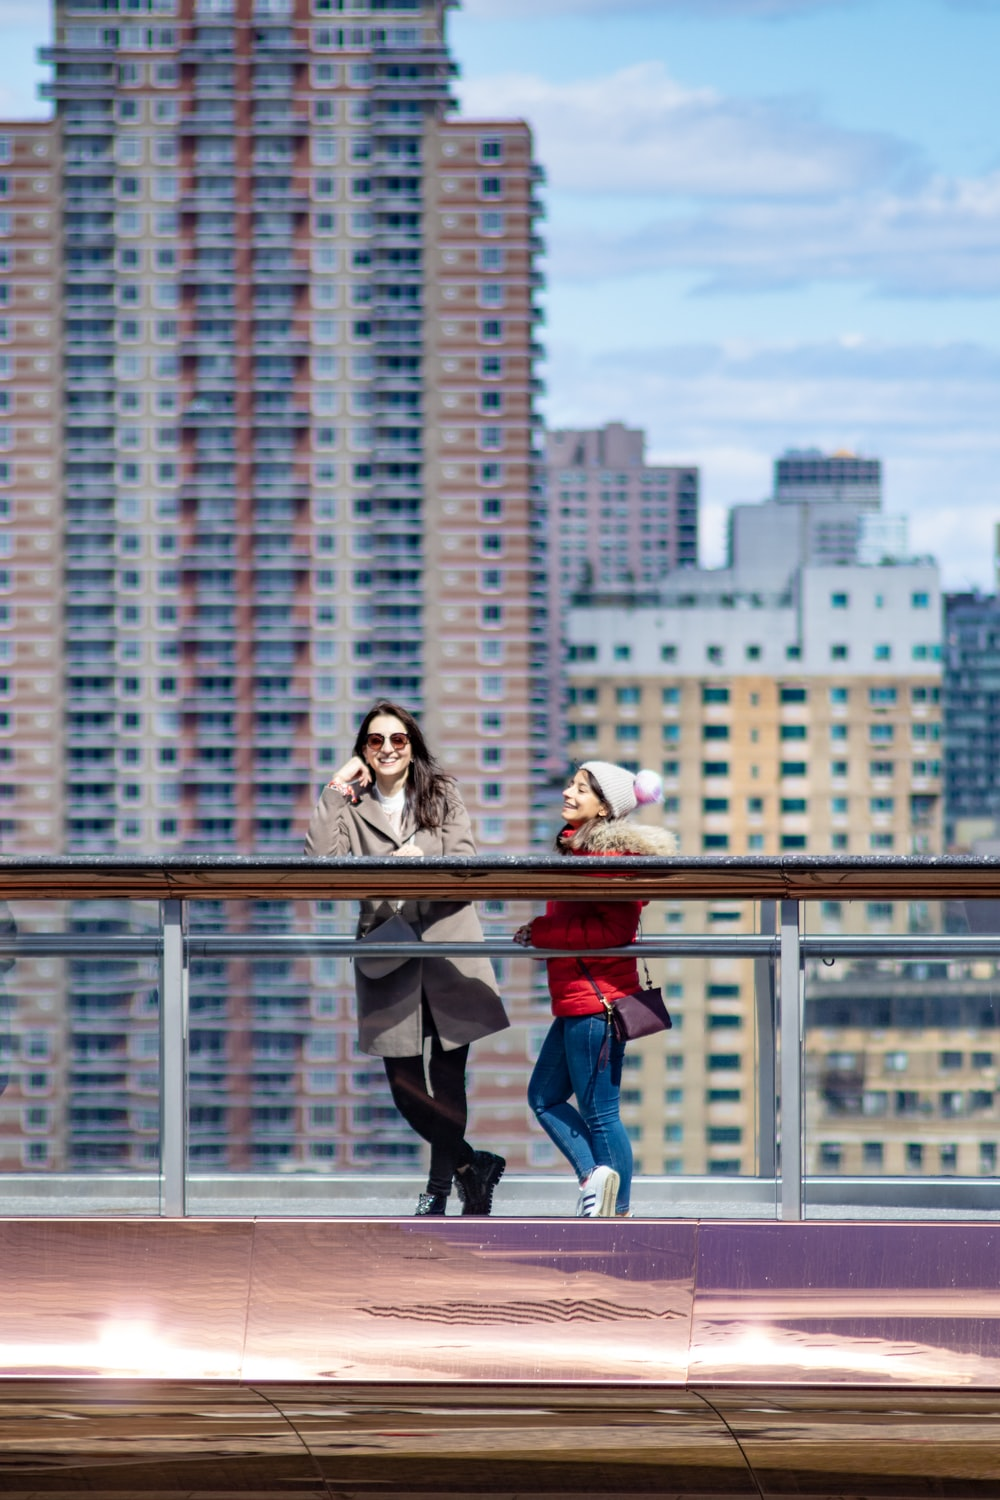 two people standing near buildings